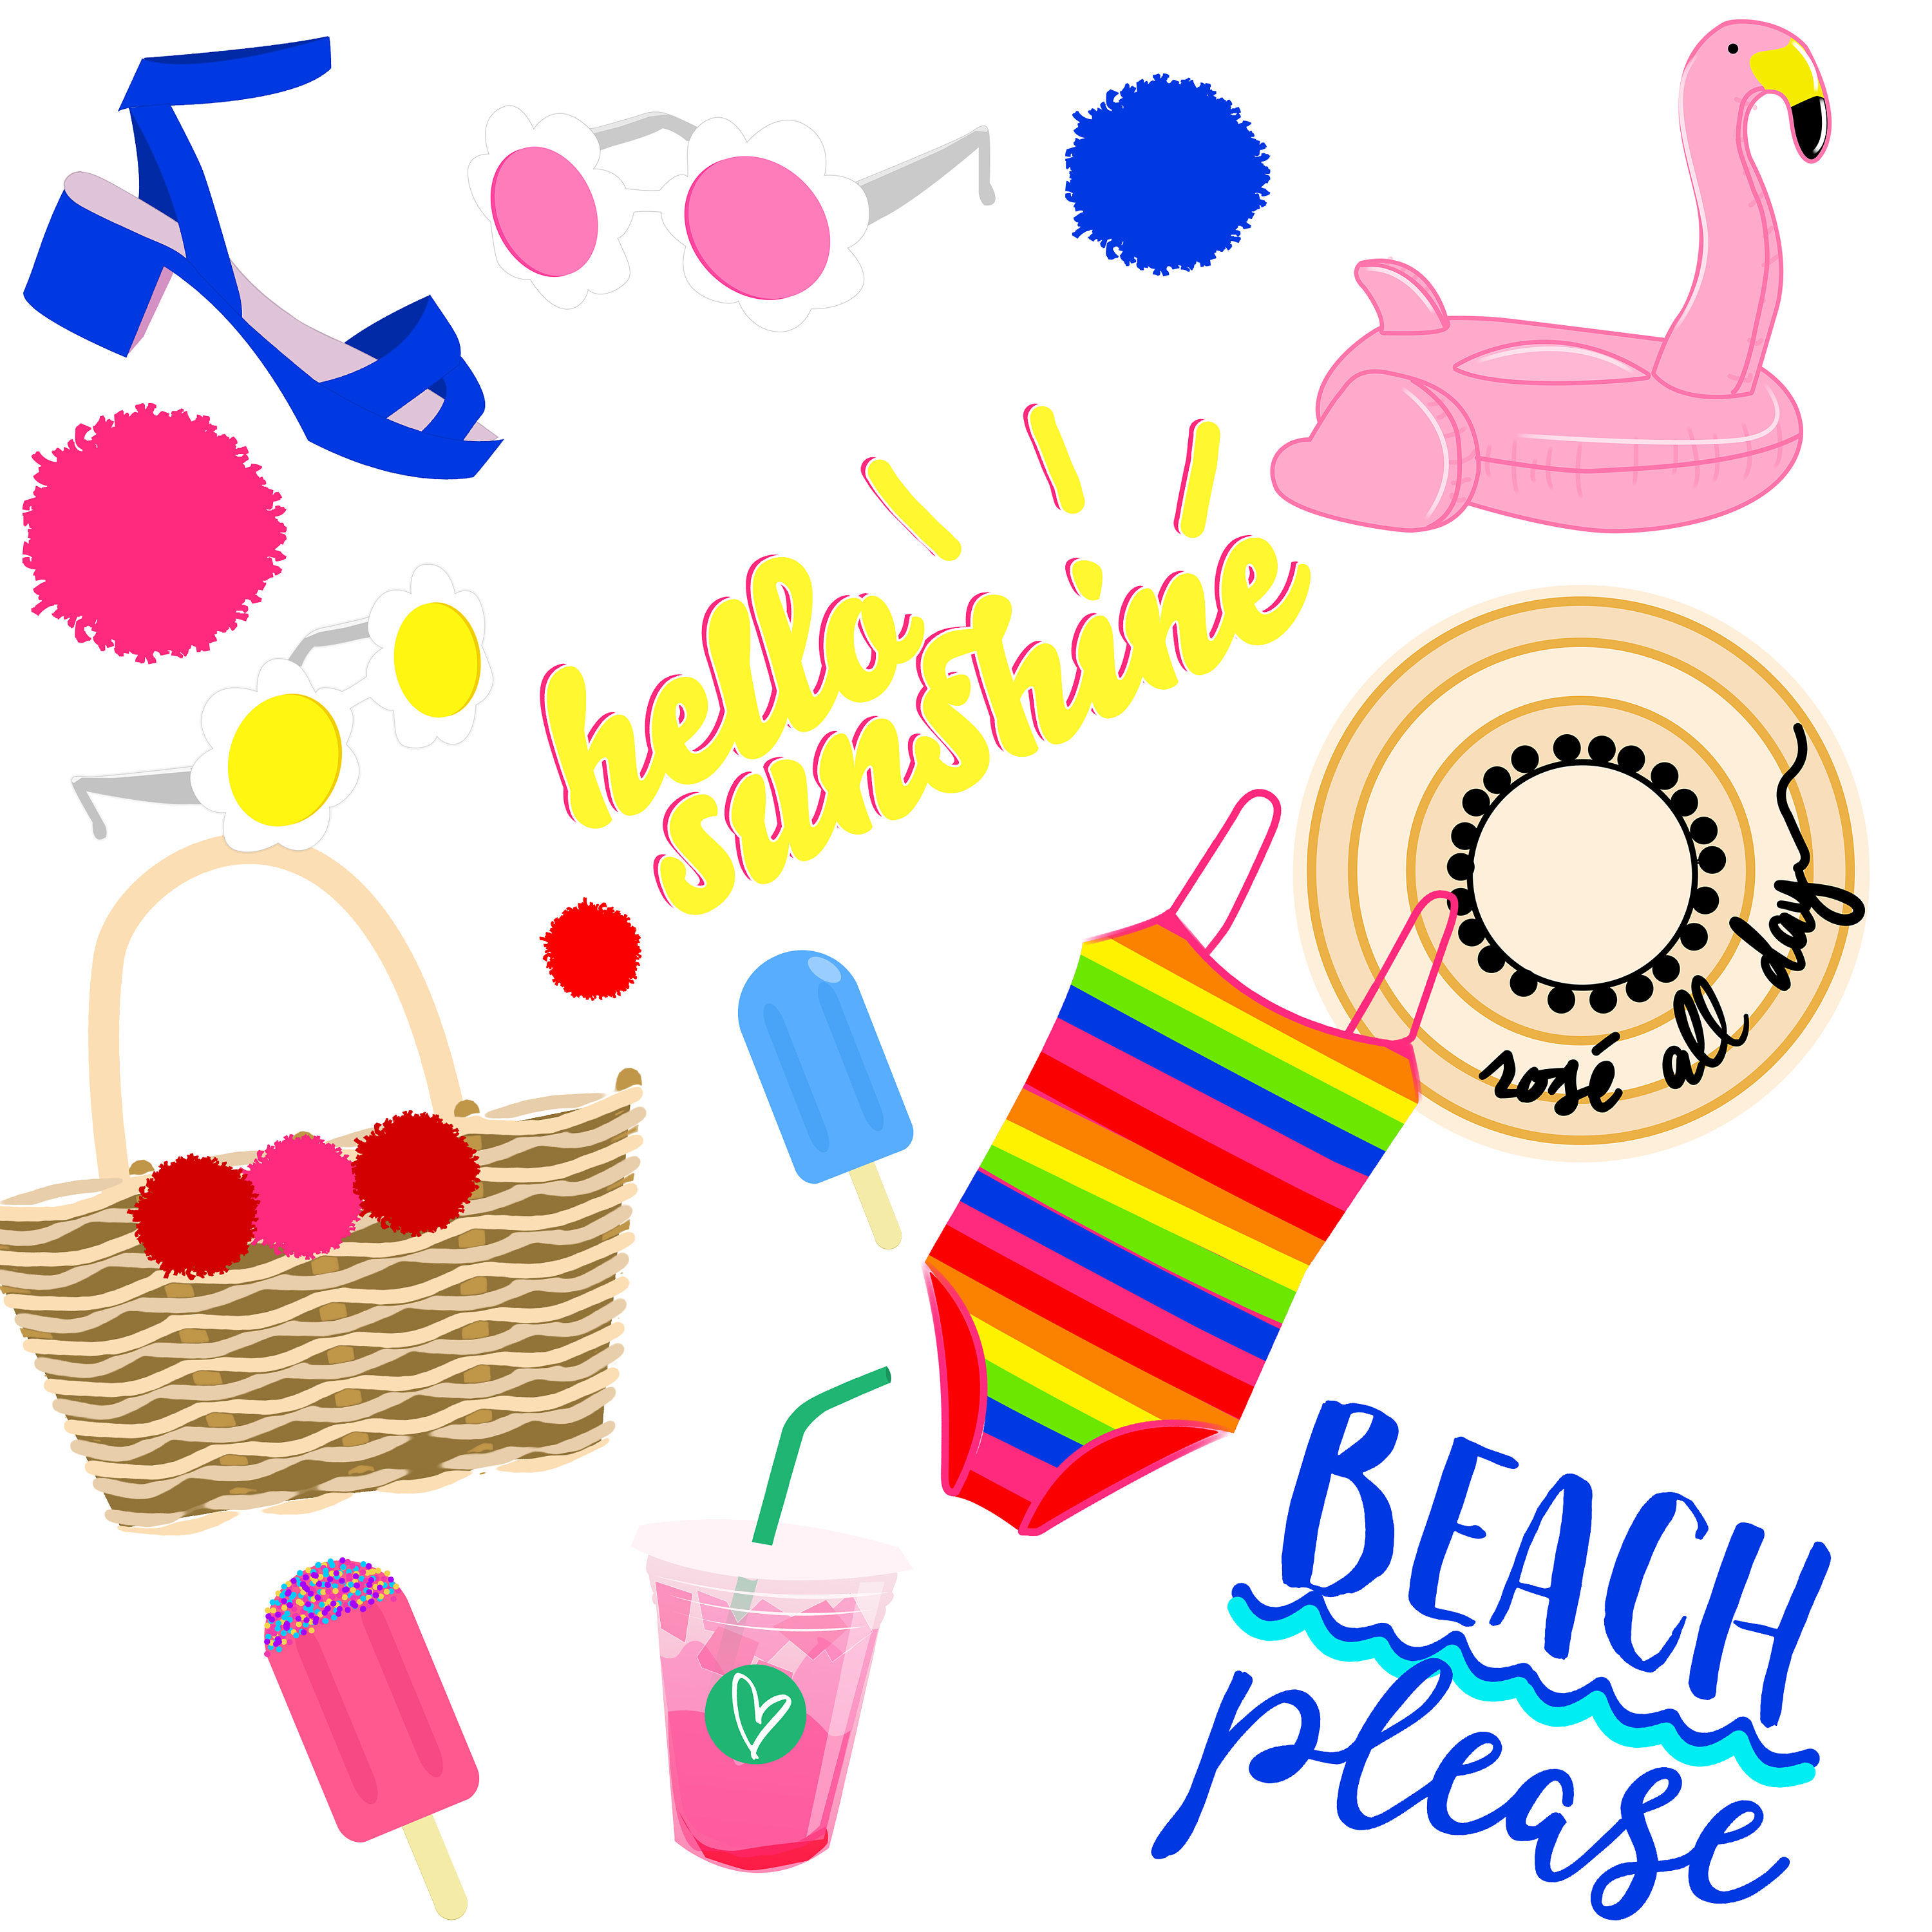 3000x3000 Beach Clipart Images